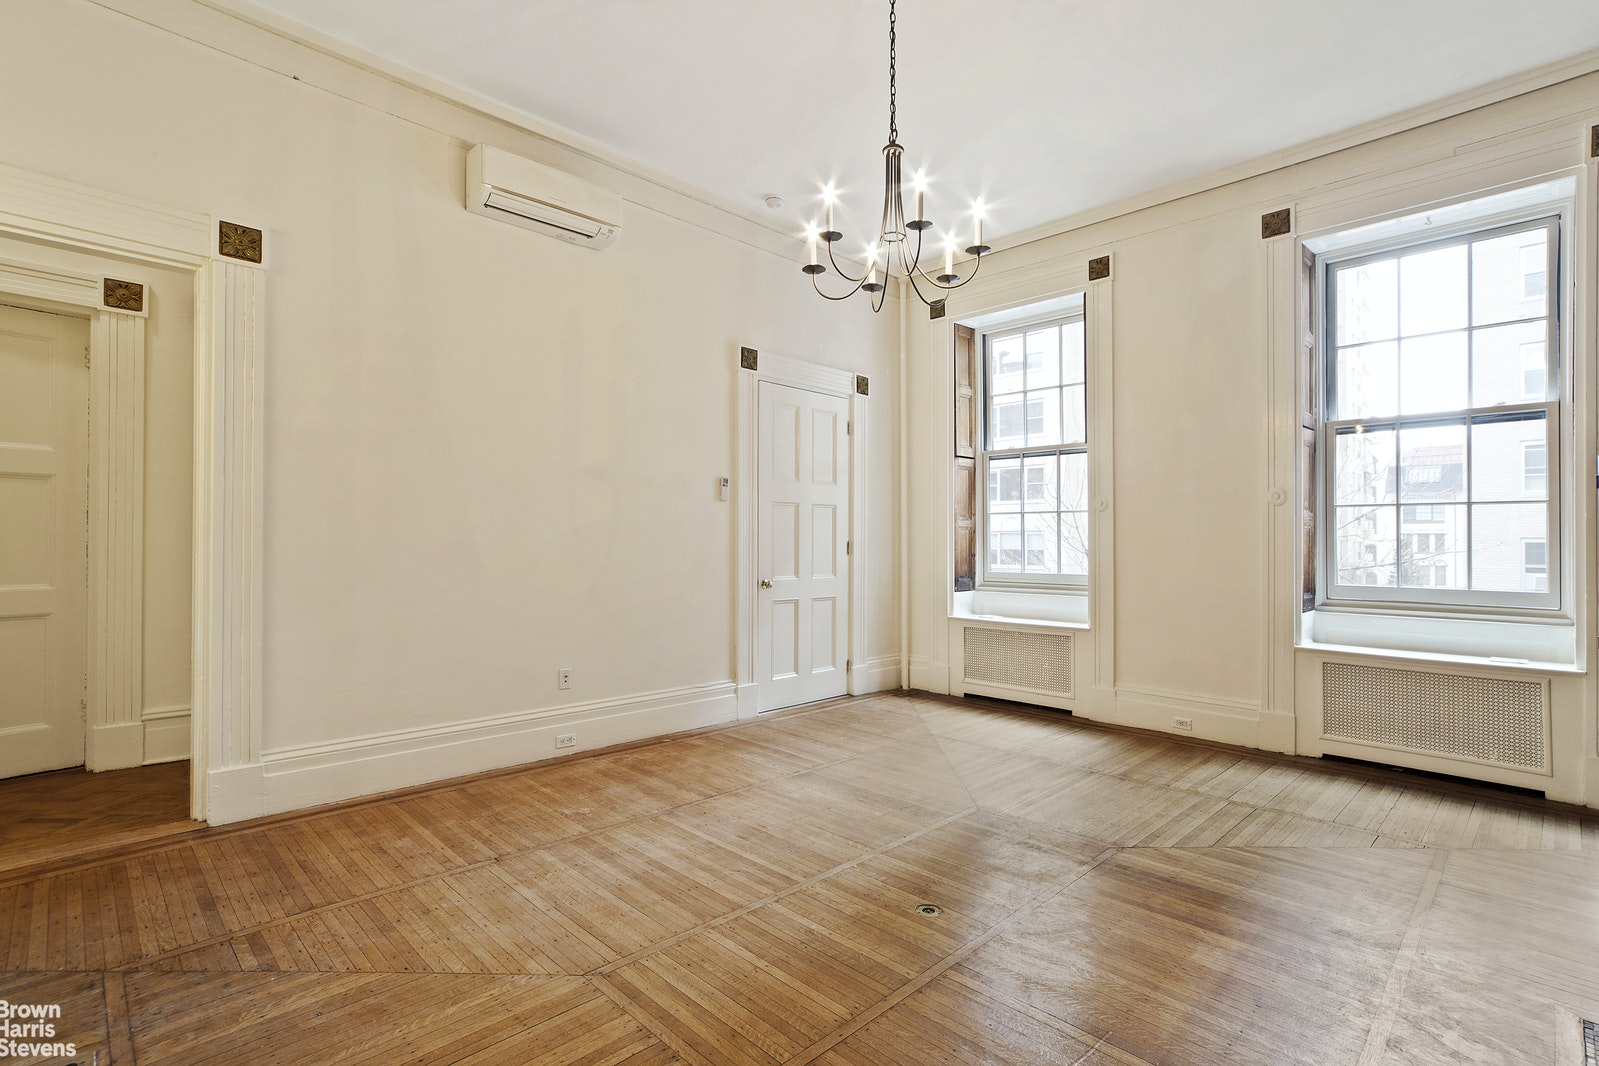 9 East 9th Street, Central Village, NYC, 10003, $10,995,000, Property For Sale, Halstead Real Estate, Photo 19